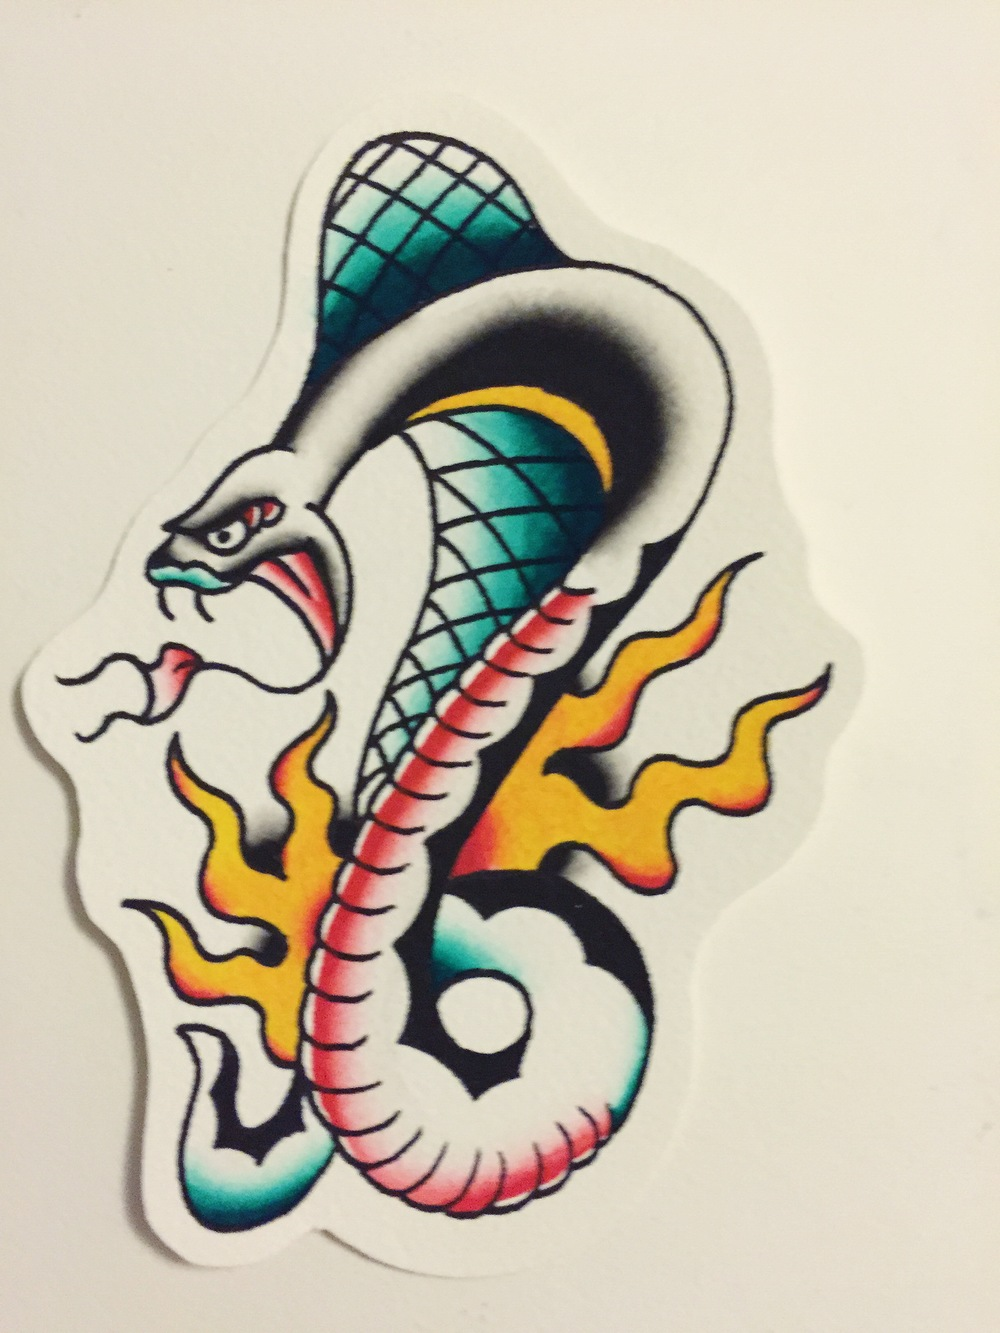 COBRA(painting comes with tattoo)